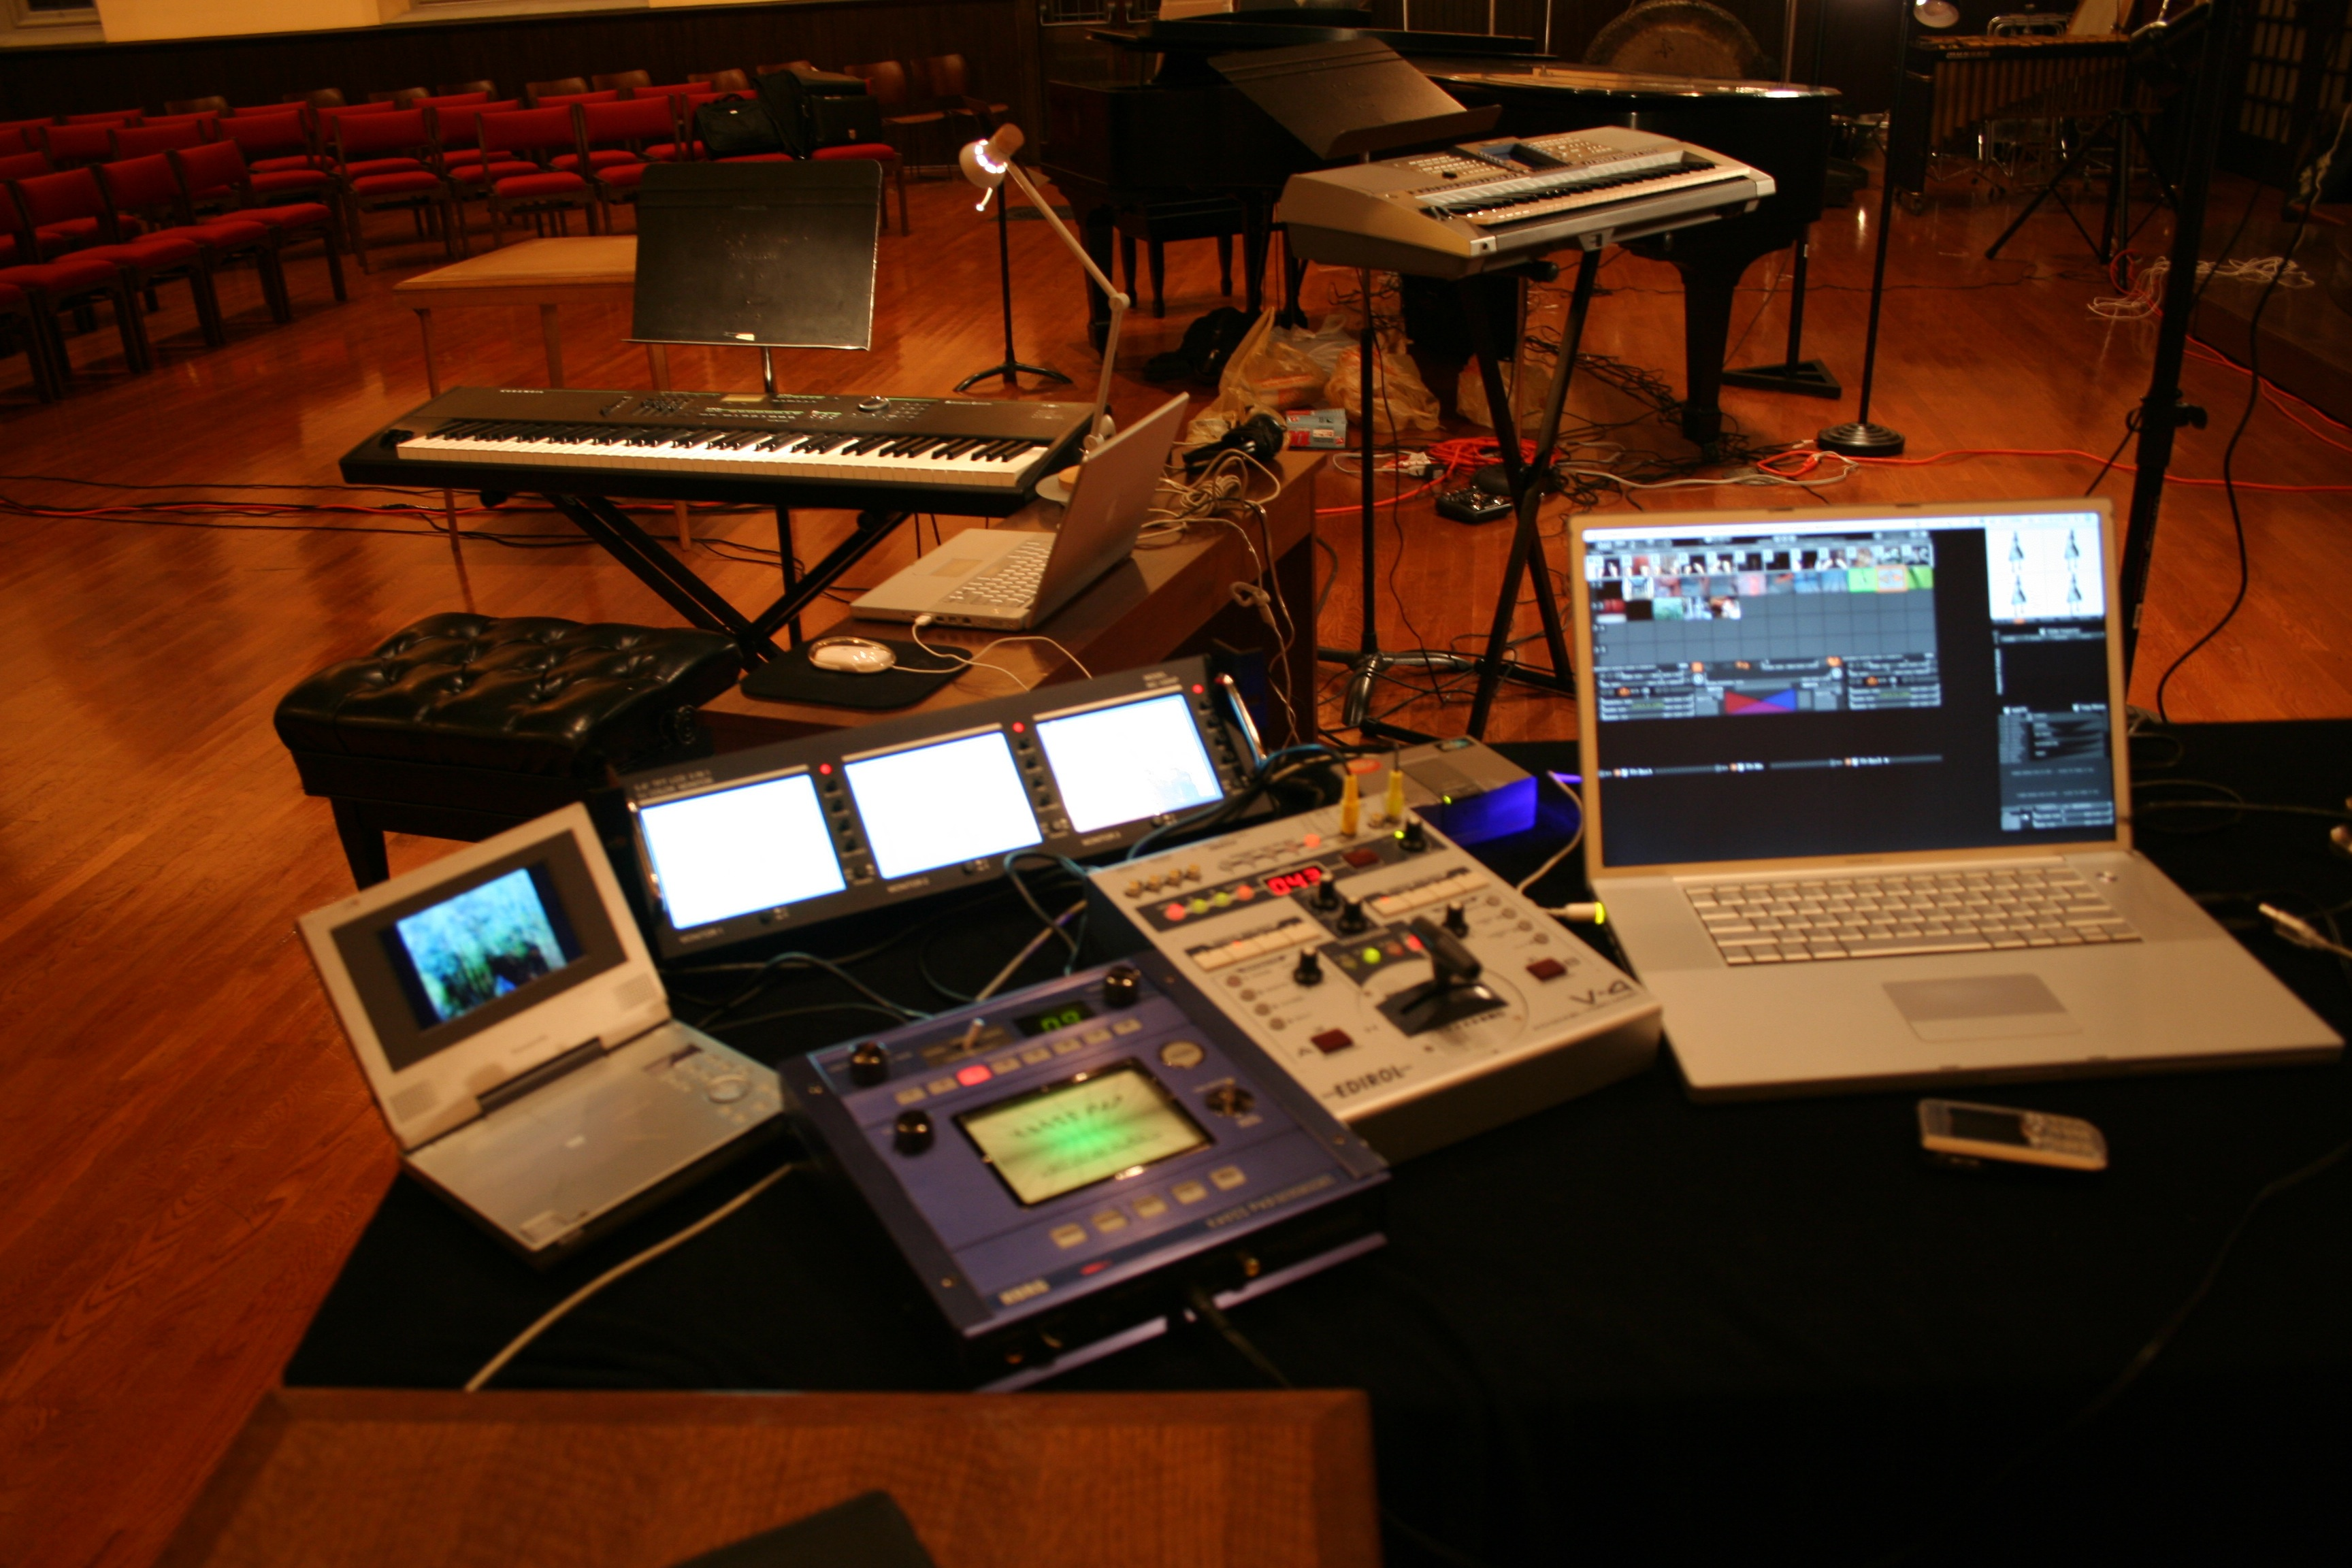 File:VJ-hardware-and-laptop.jpg - Wikimedia Commons